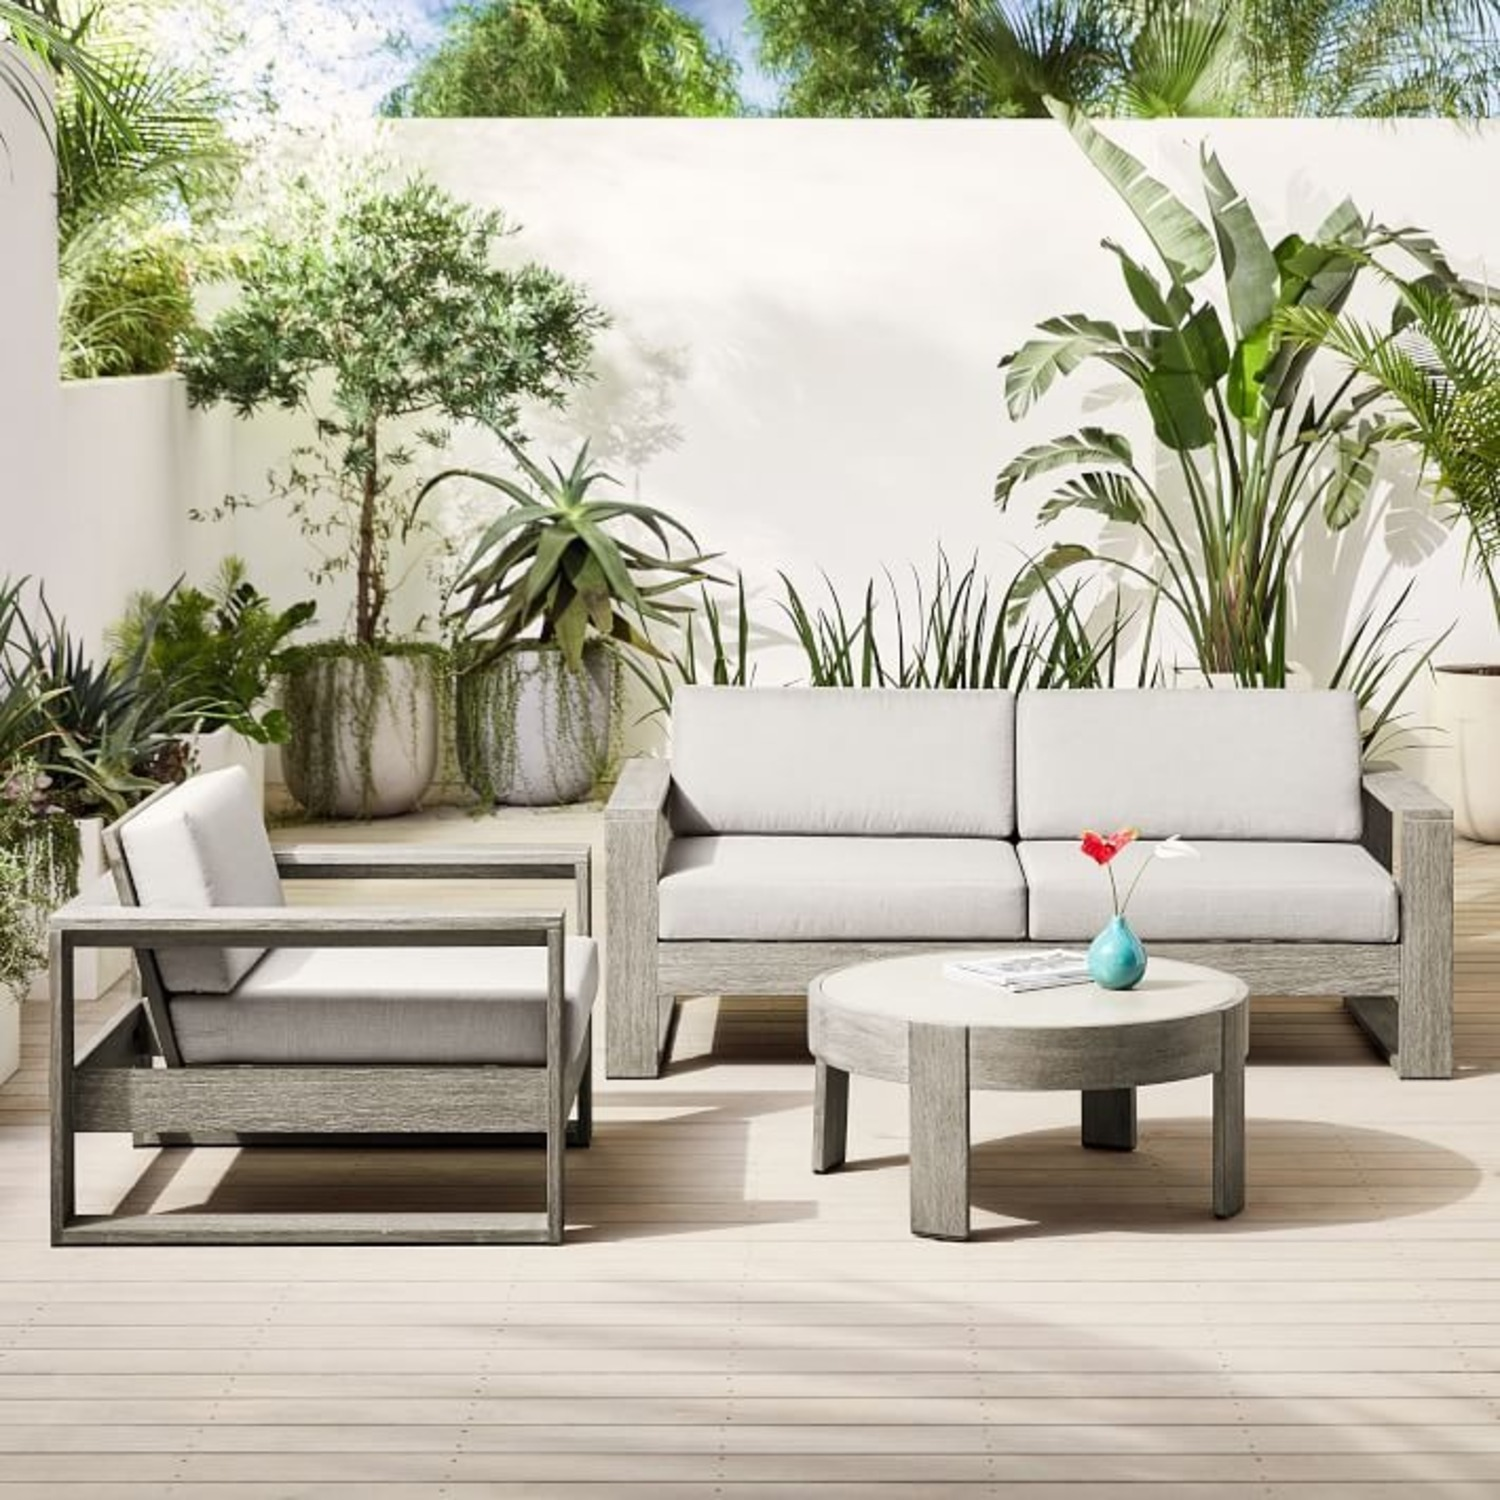 West Elm Portside Outdoor Concrete Coffee Table - image-3